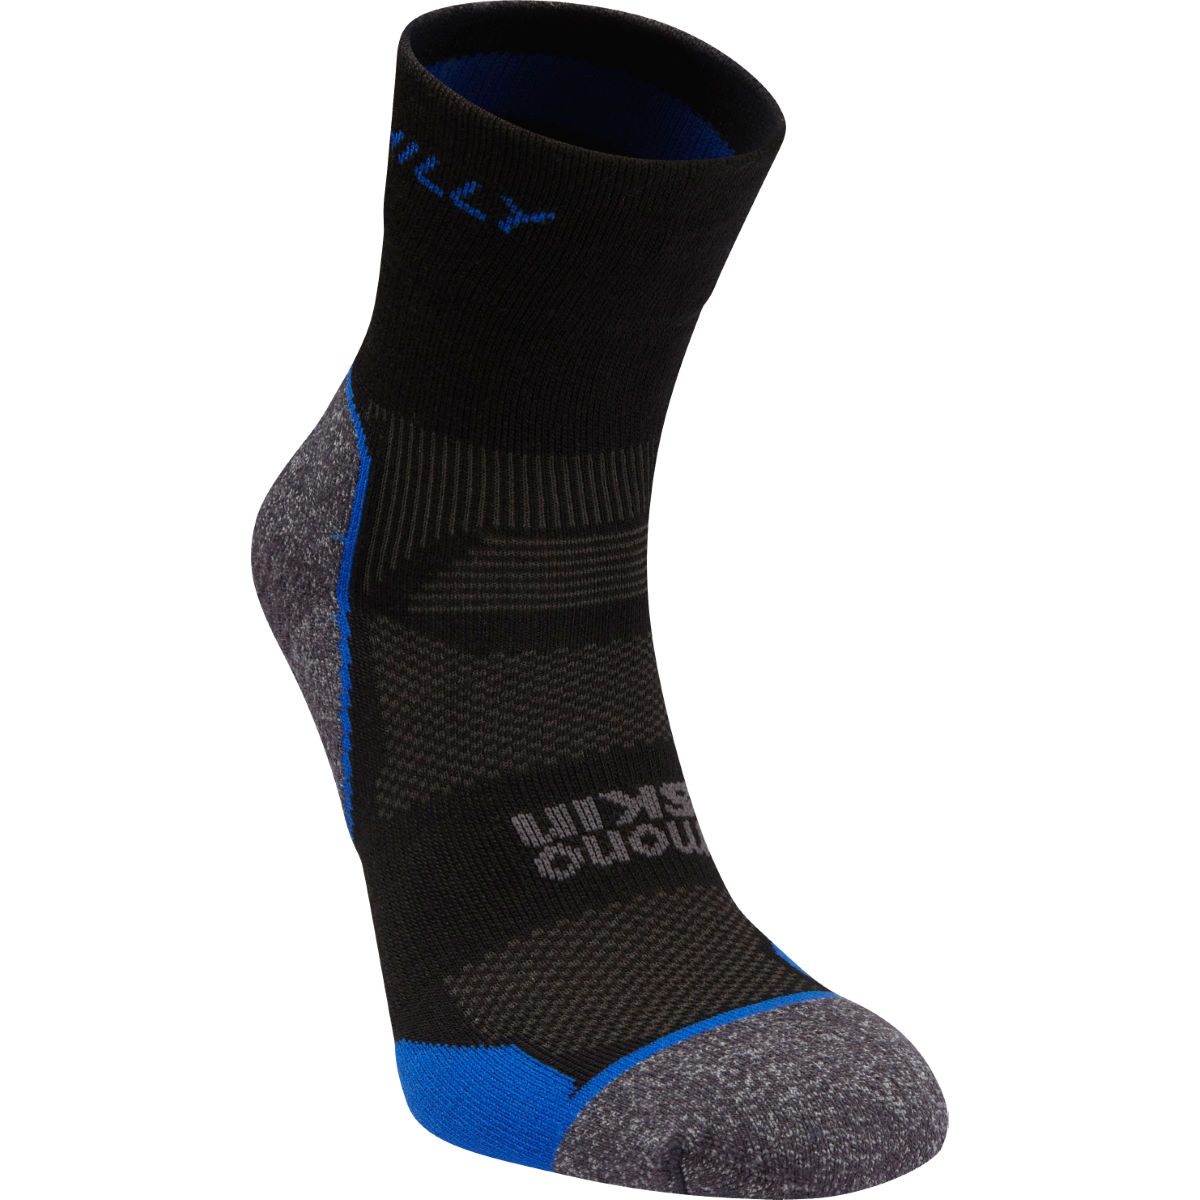 Chaussettes Hilly Supreme - S Black/Charcoal/Blue